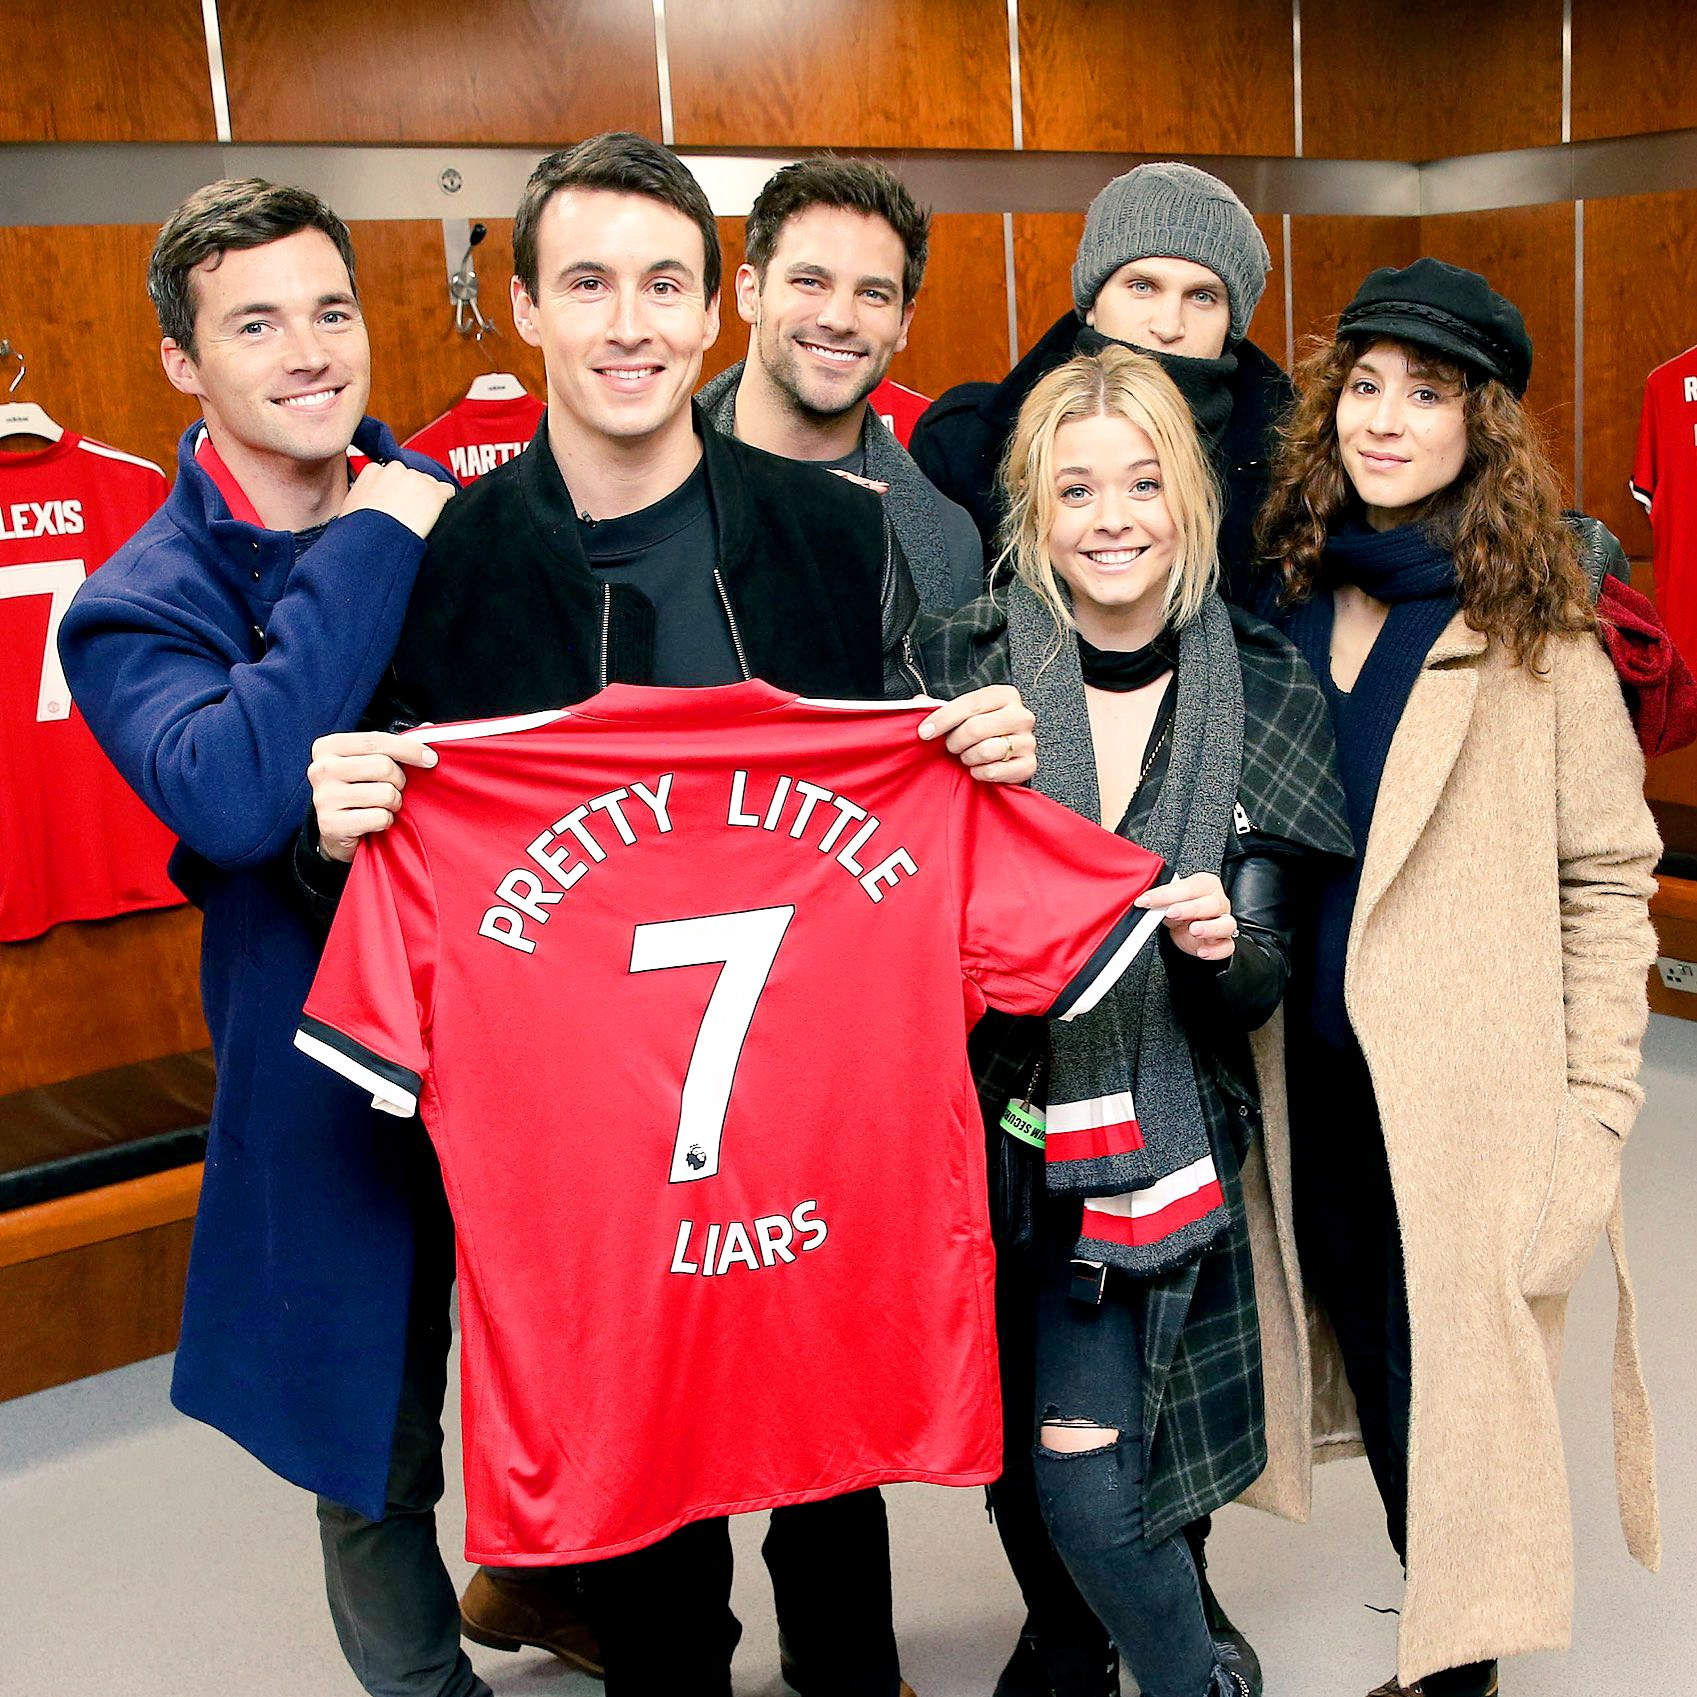 'Pretty Little Liars' cast reunites